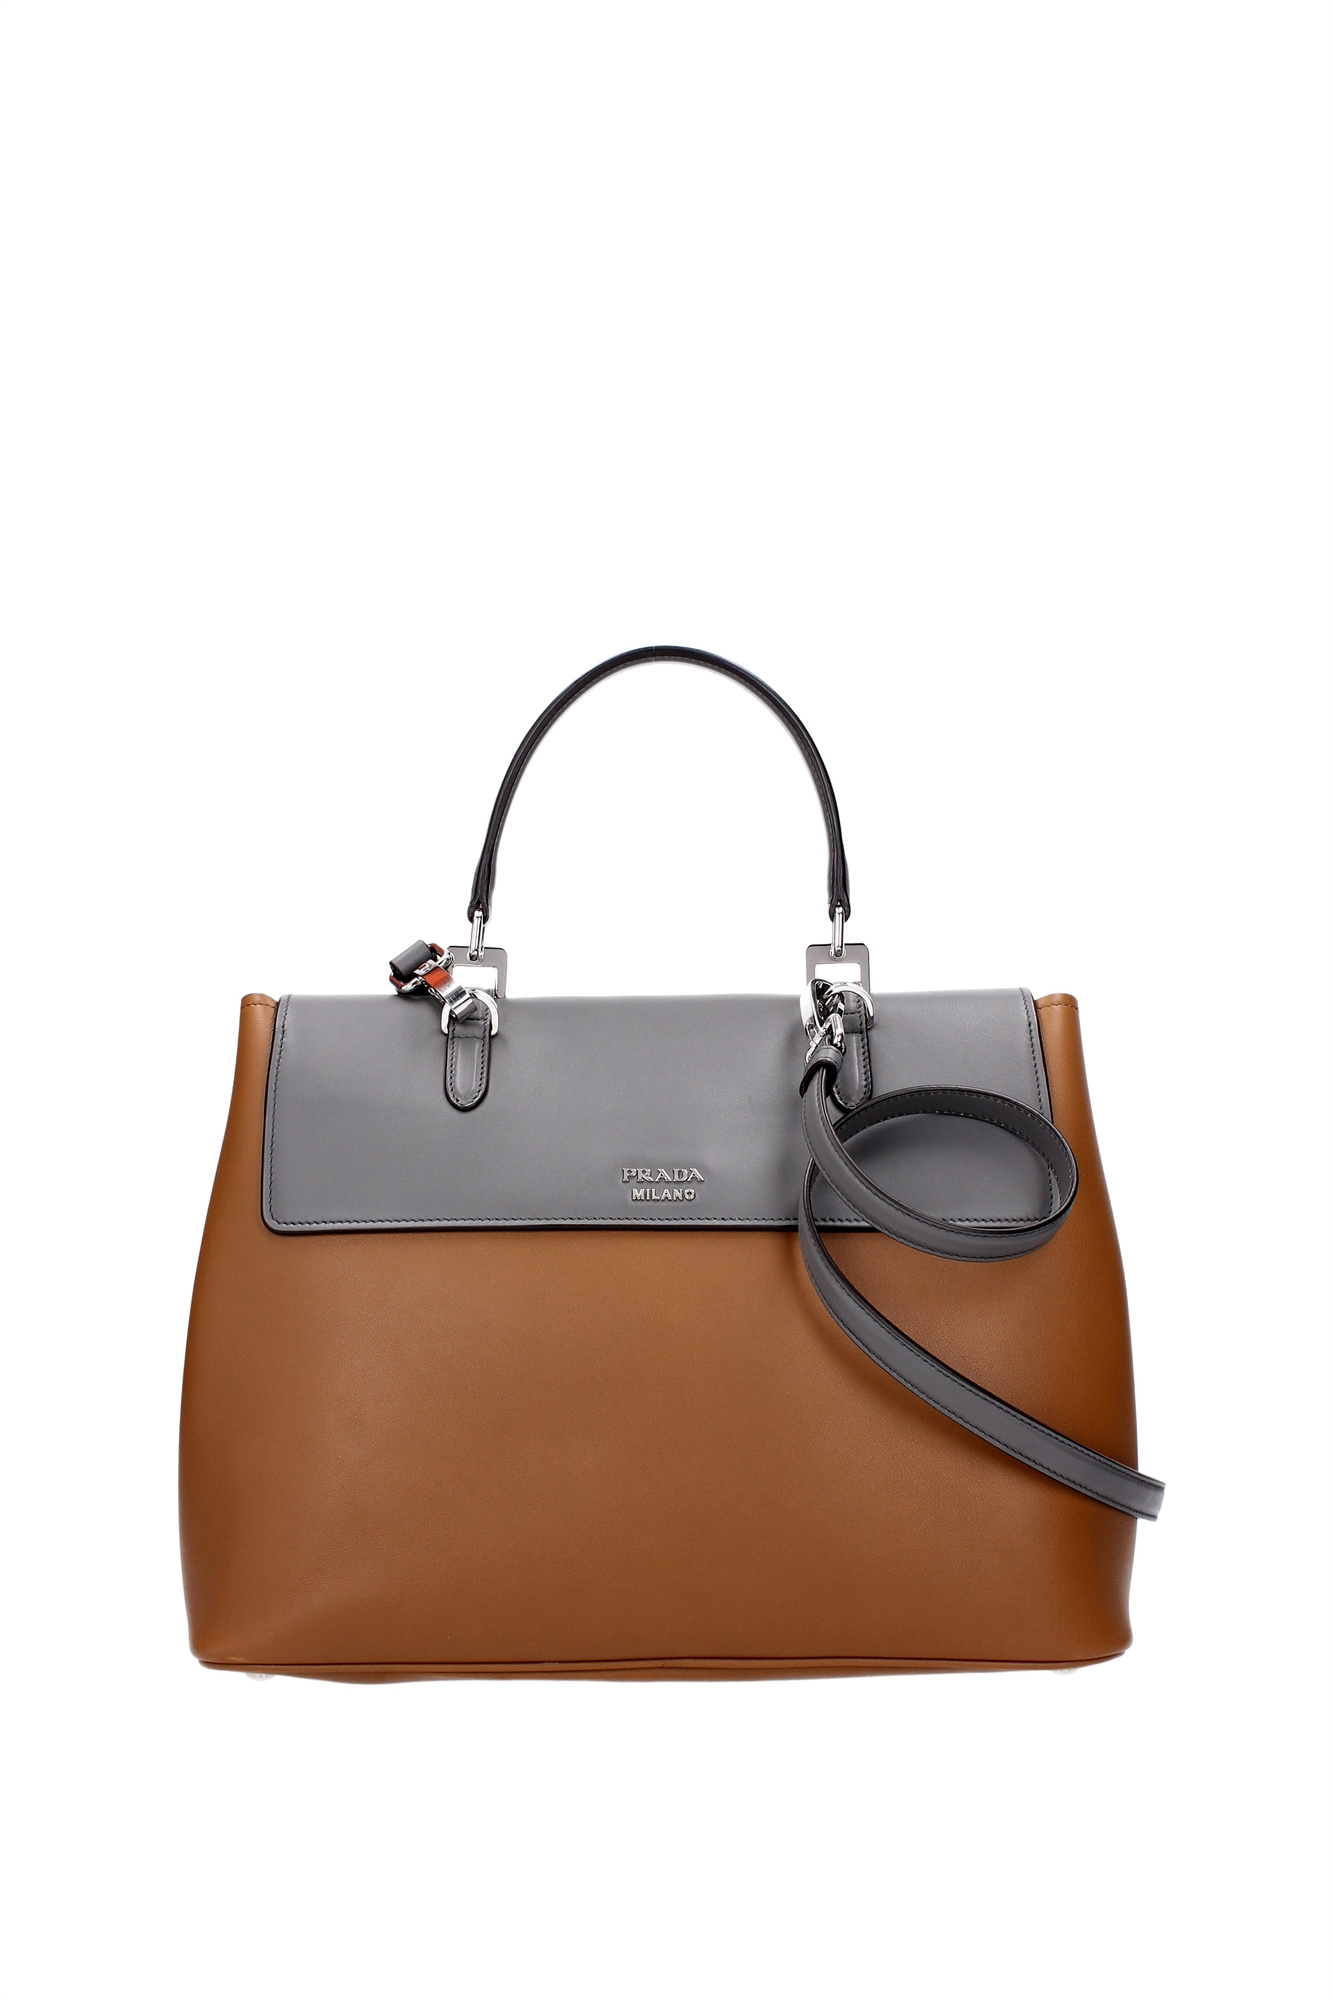 Prada Handbags On Ebay Uk | SCALE